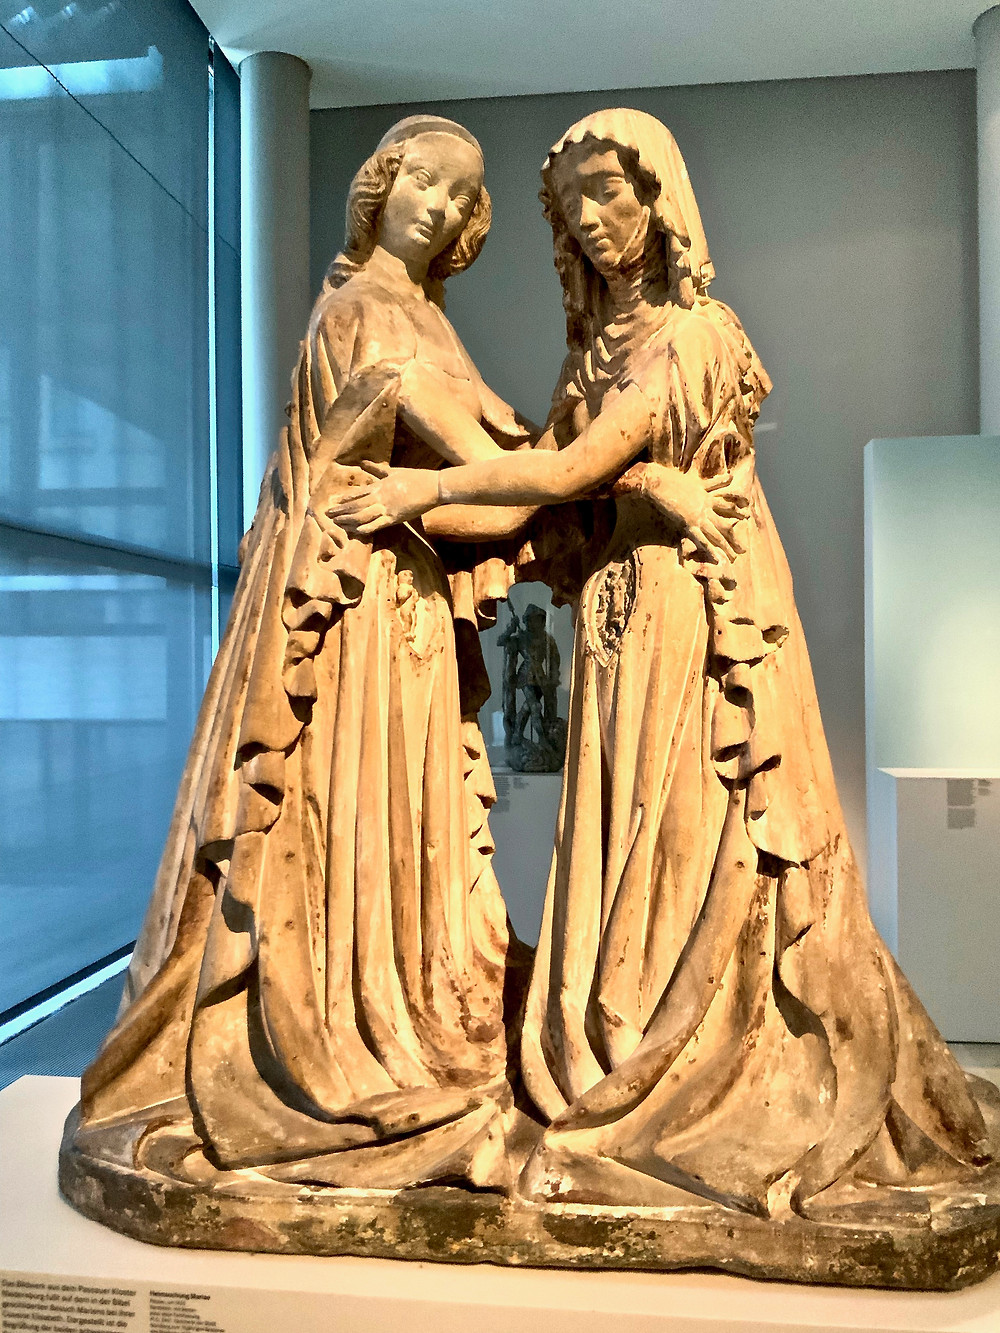 Mary and Elizabeth and the unborn babies in their abdominal cavities